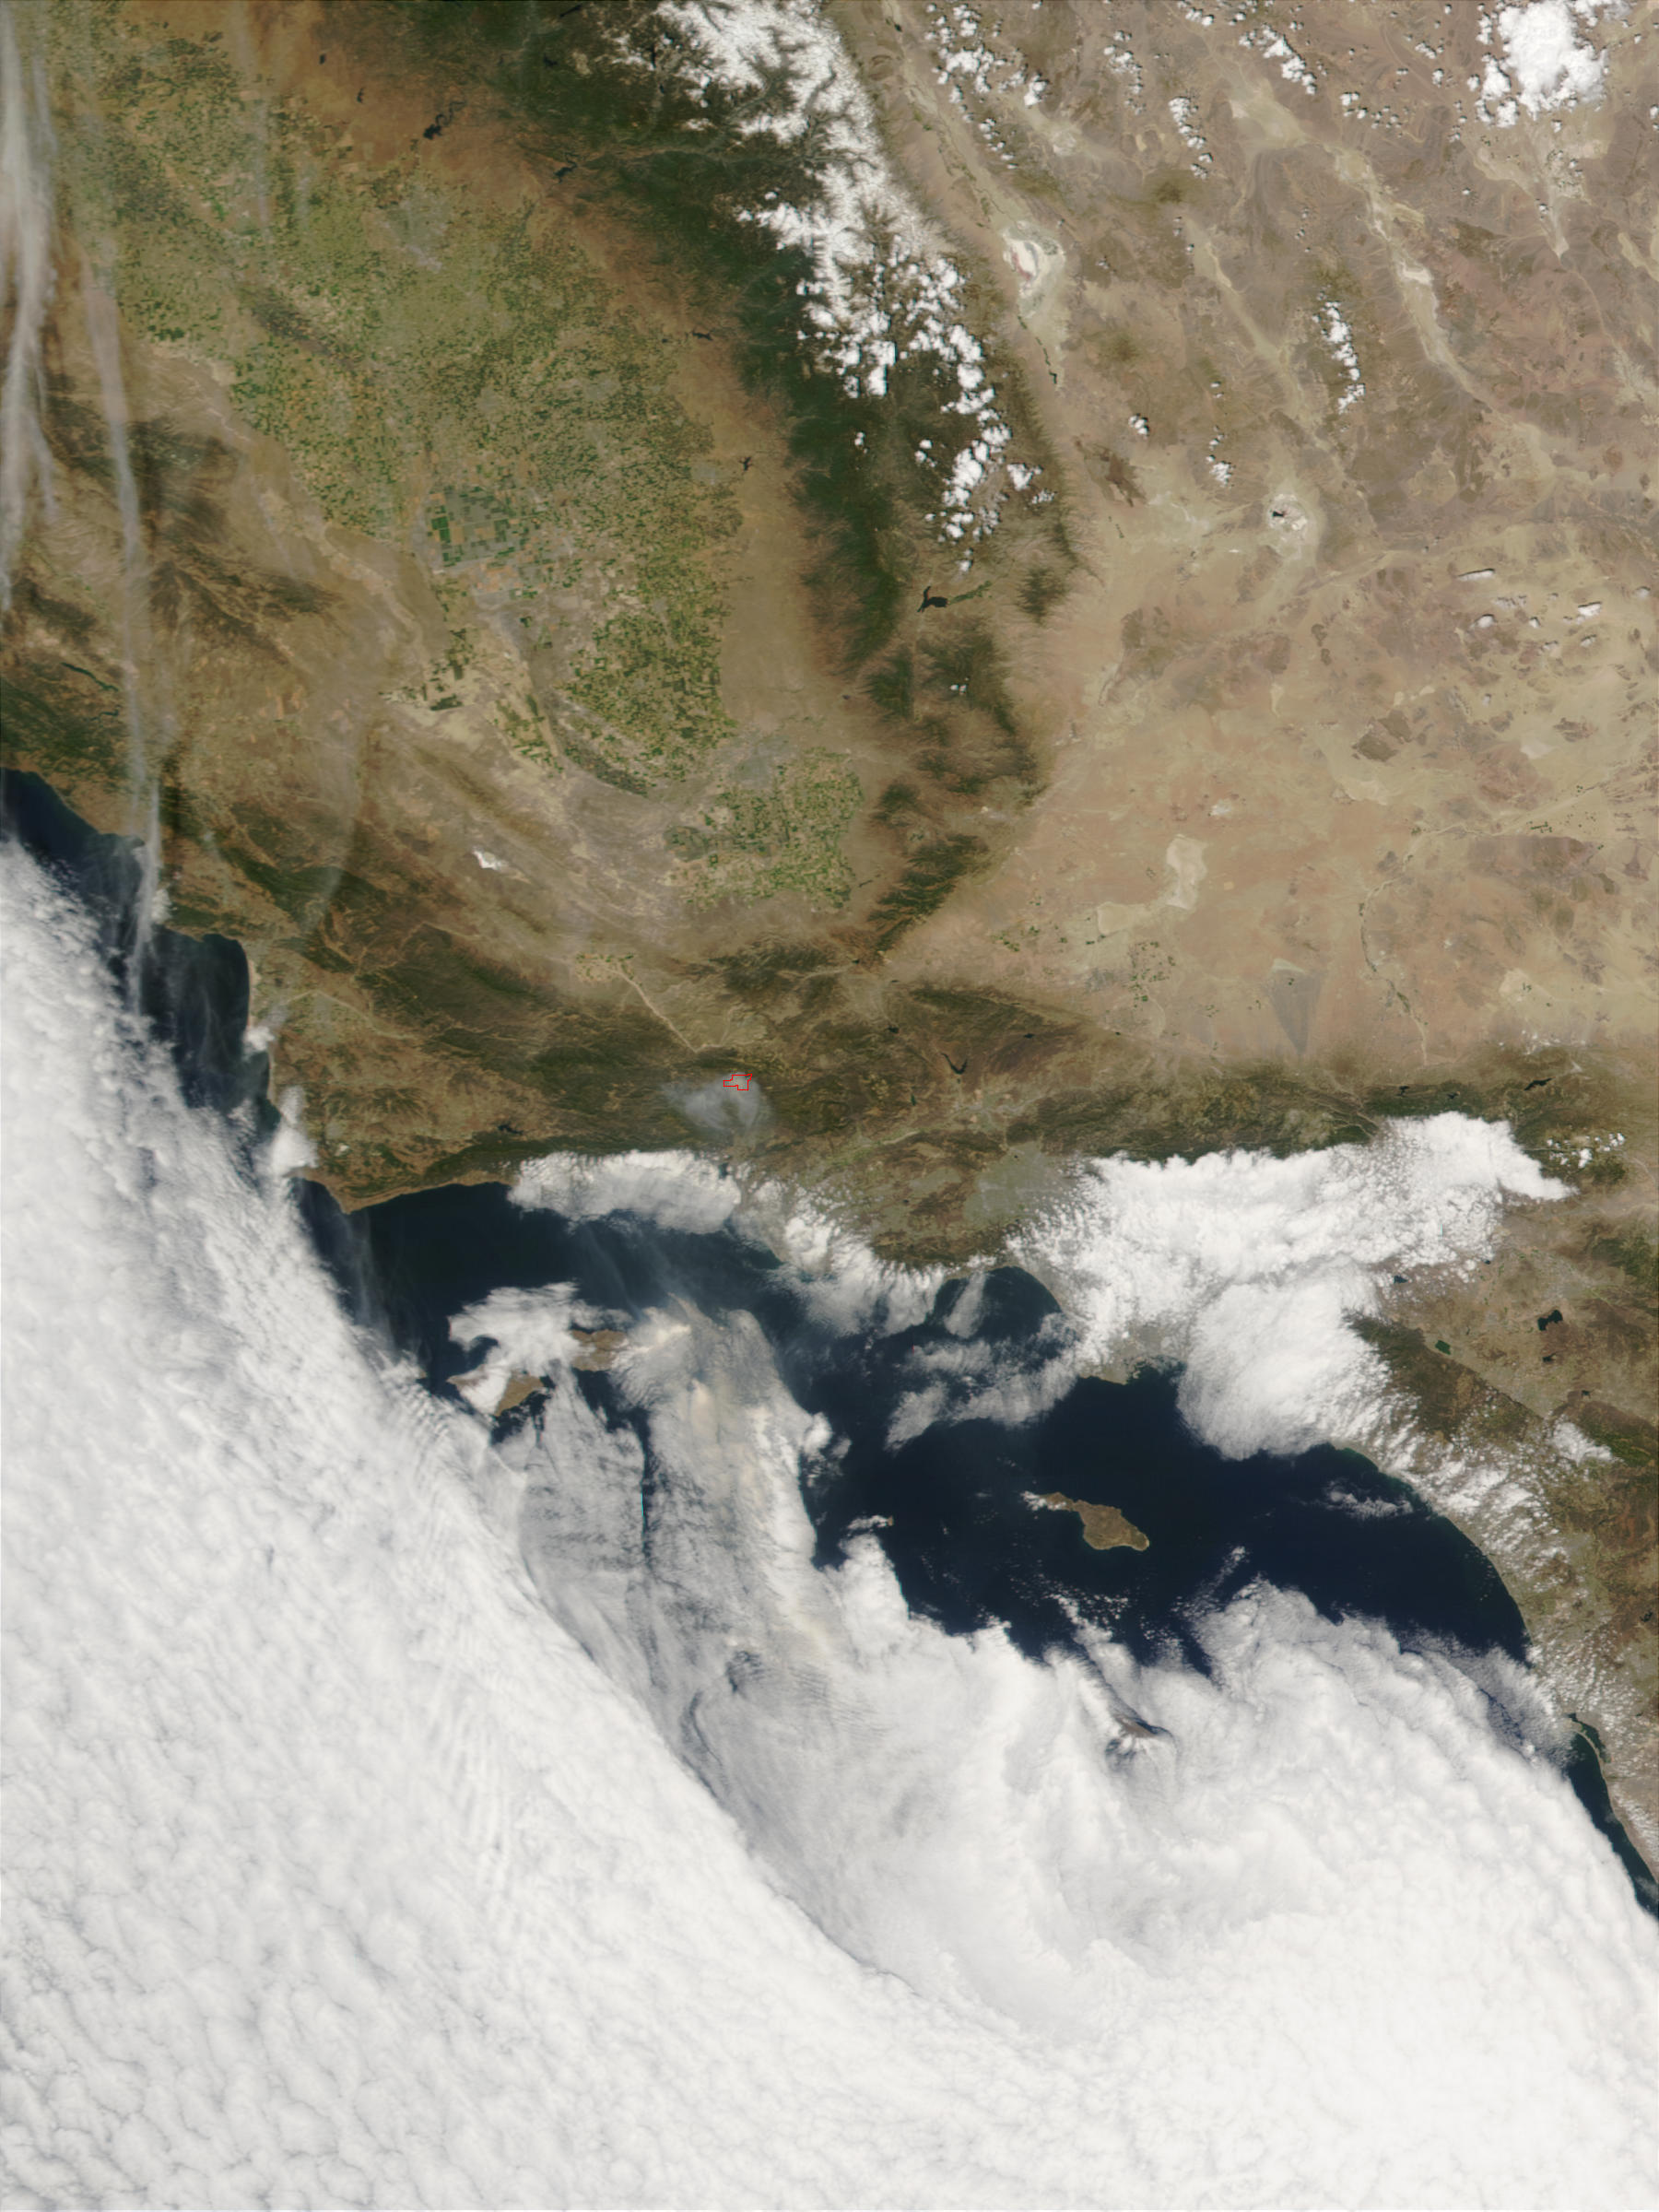 Incendio Wolf al oeste de Los Angeles, California